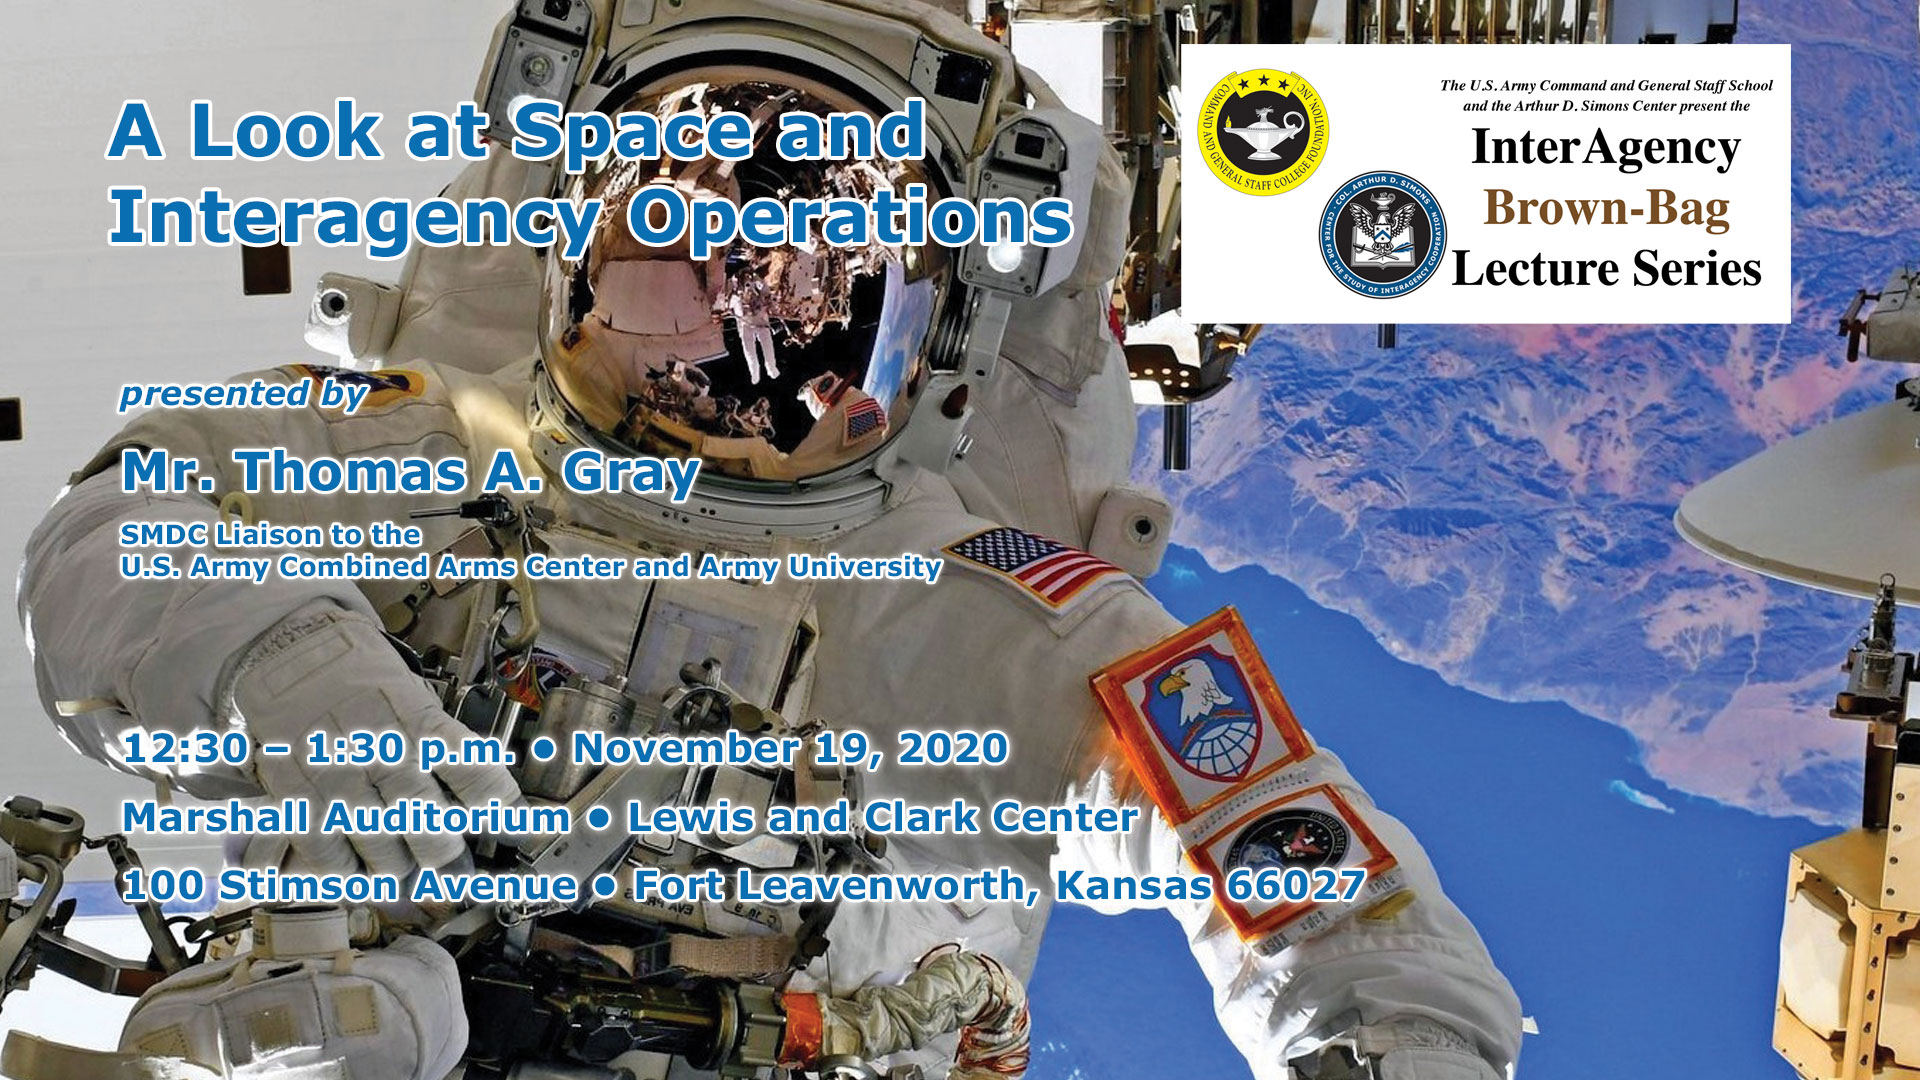 brown-bag lecture image with astronaut and lecture date, time, location